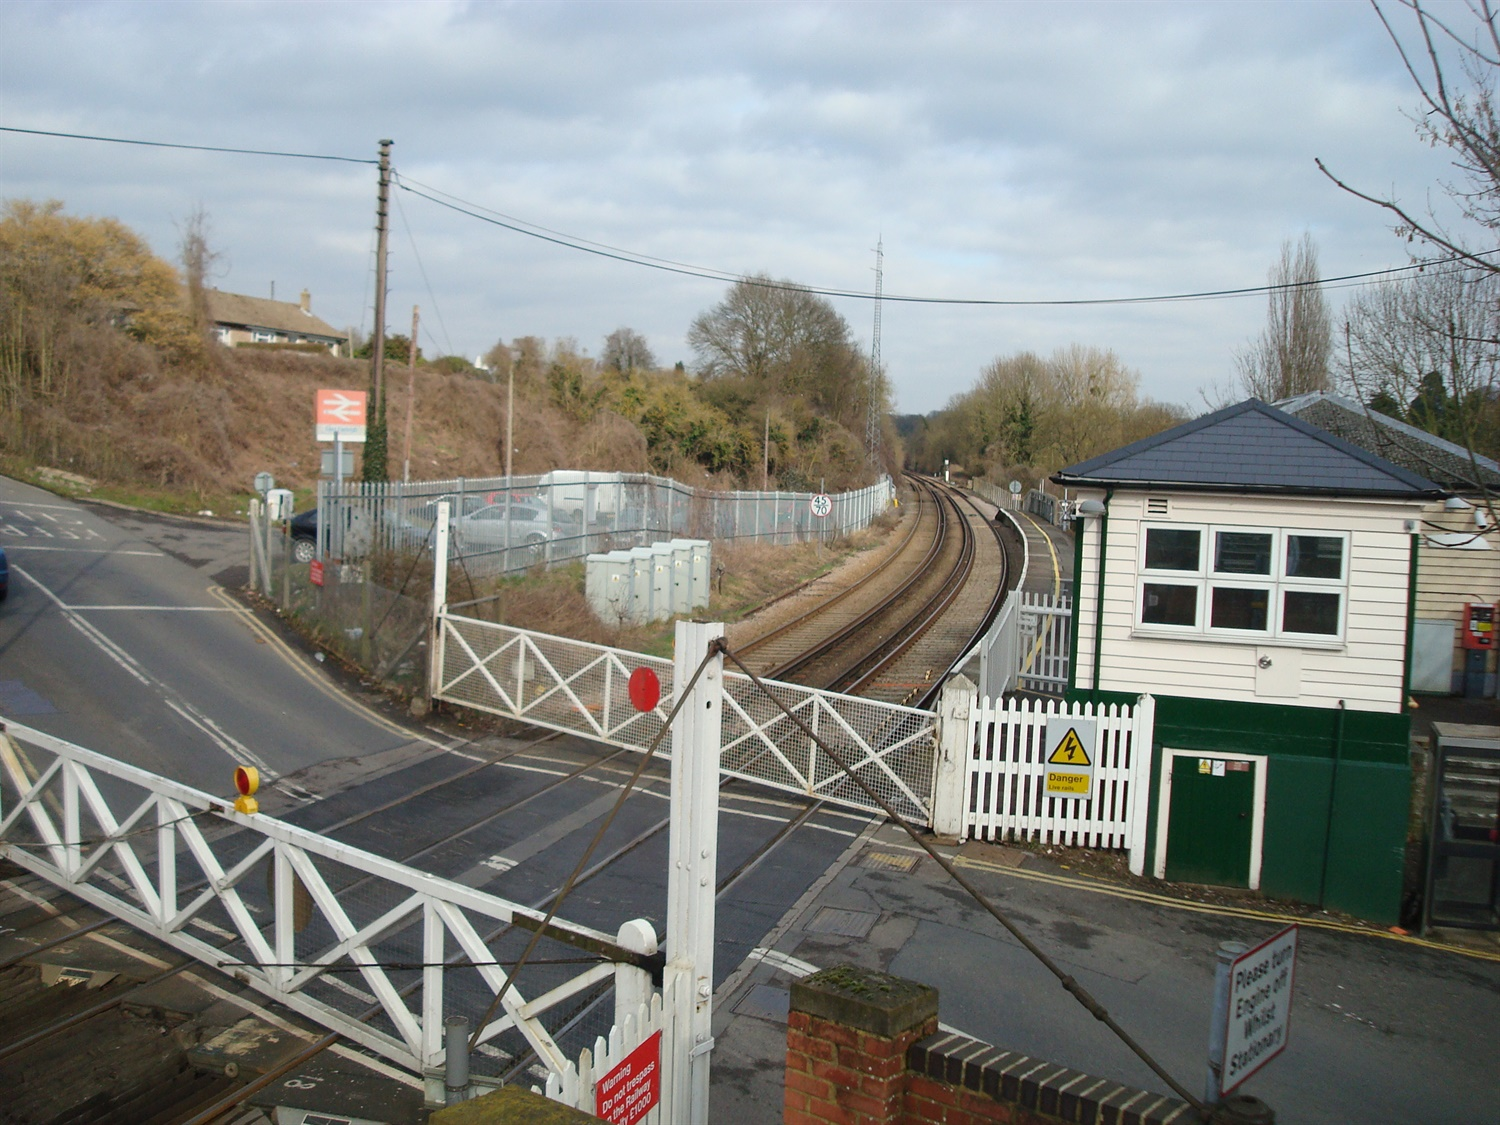 Network Rail fined £200k after elderly signaller suffers 'life-changing injuries' in level crossing